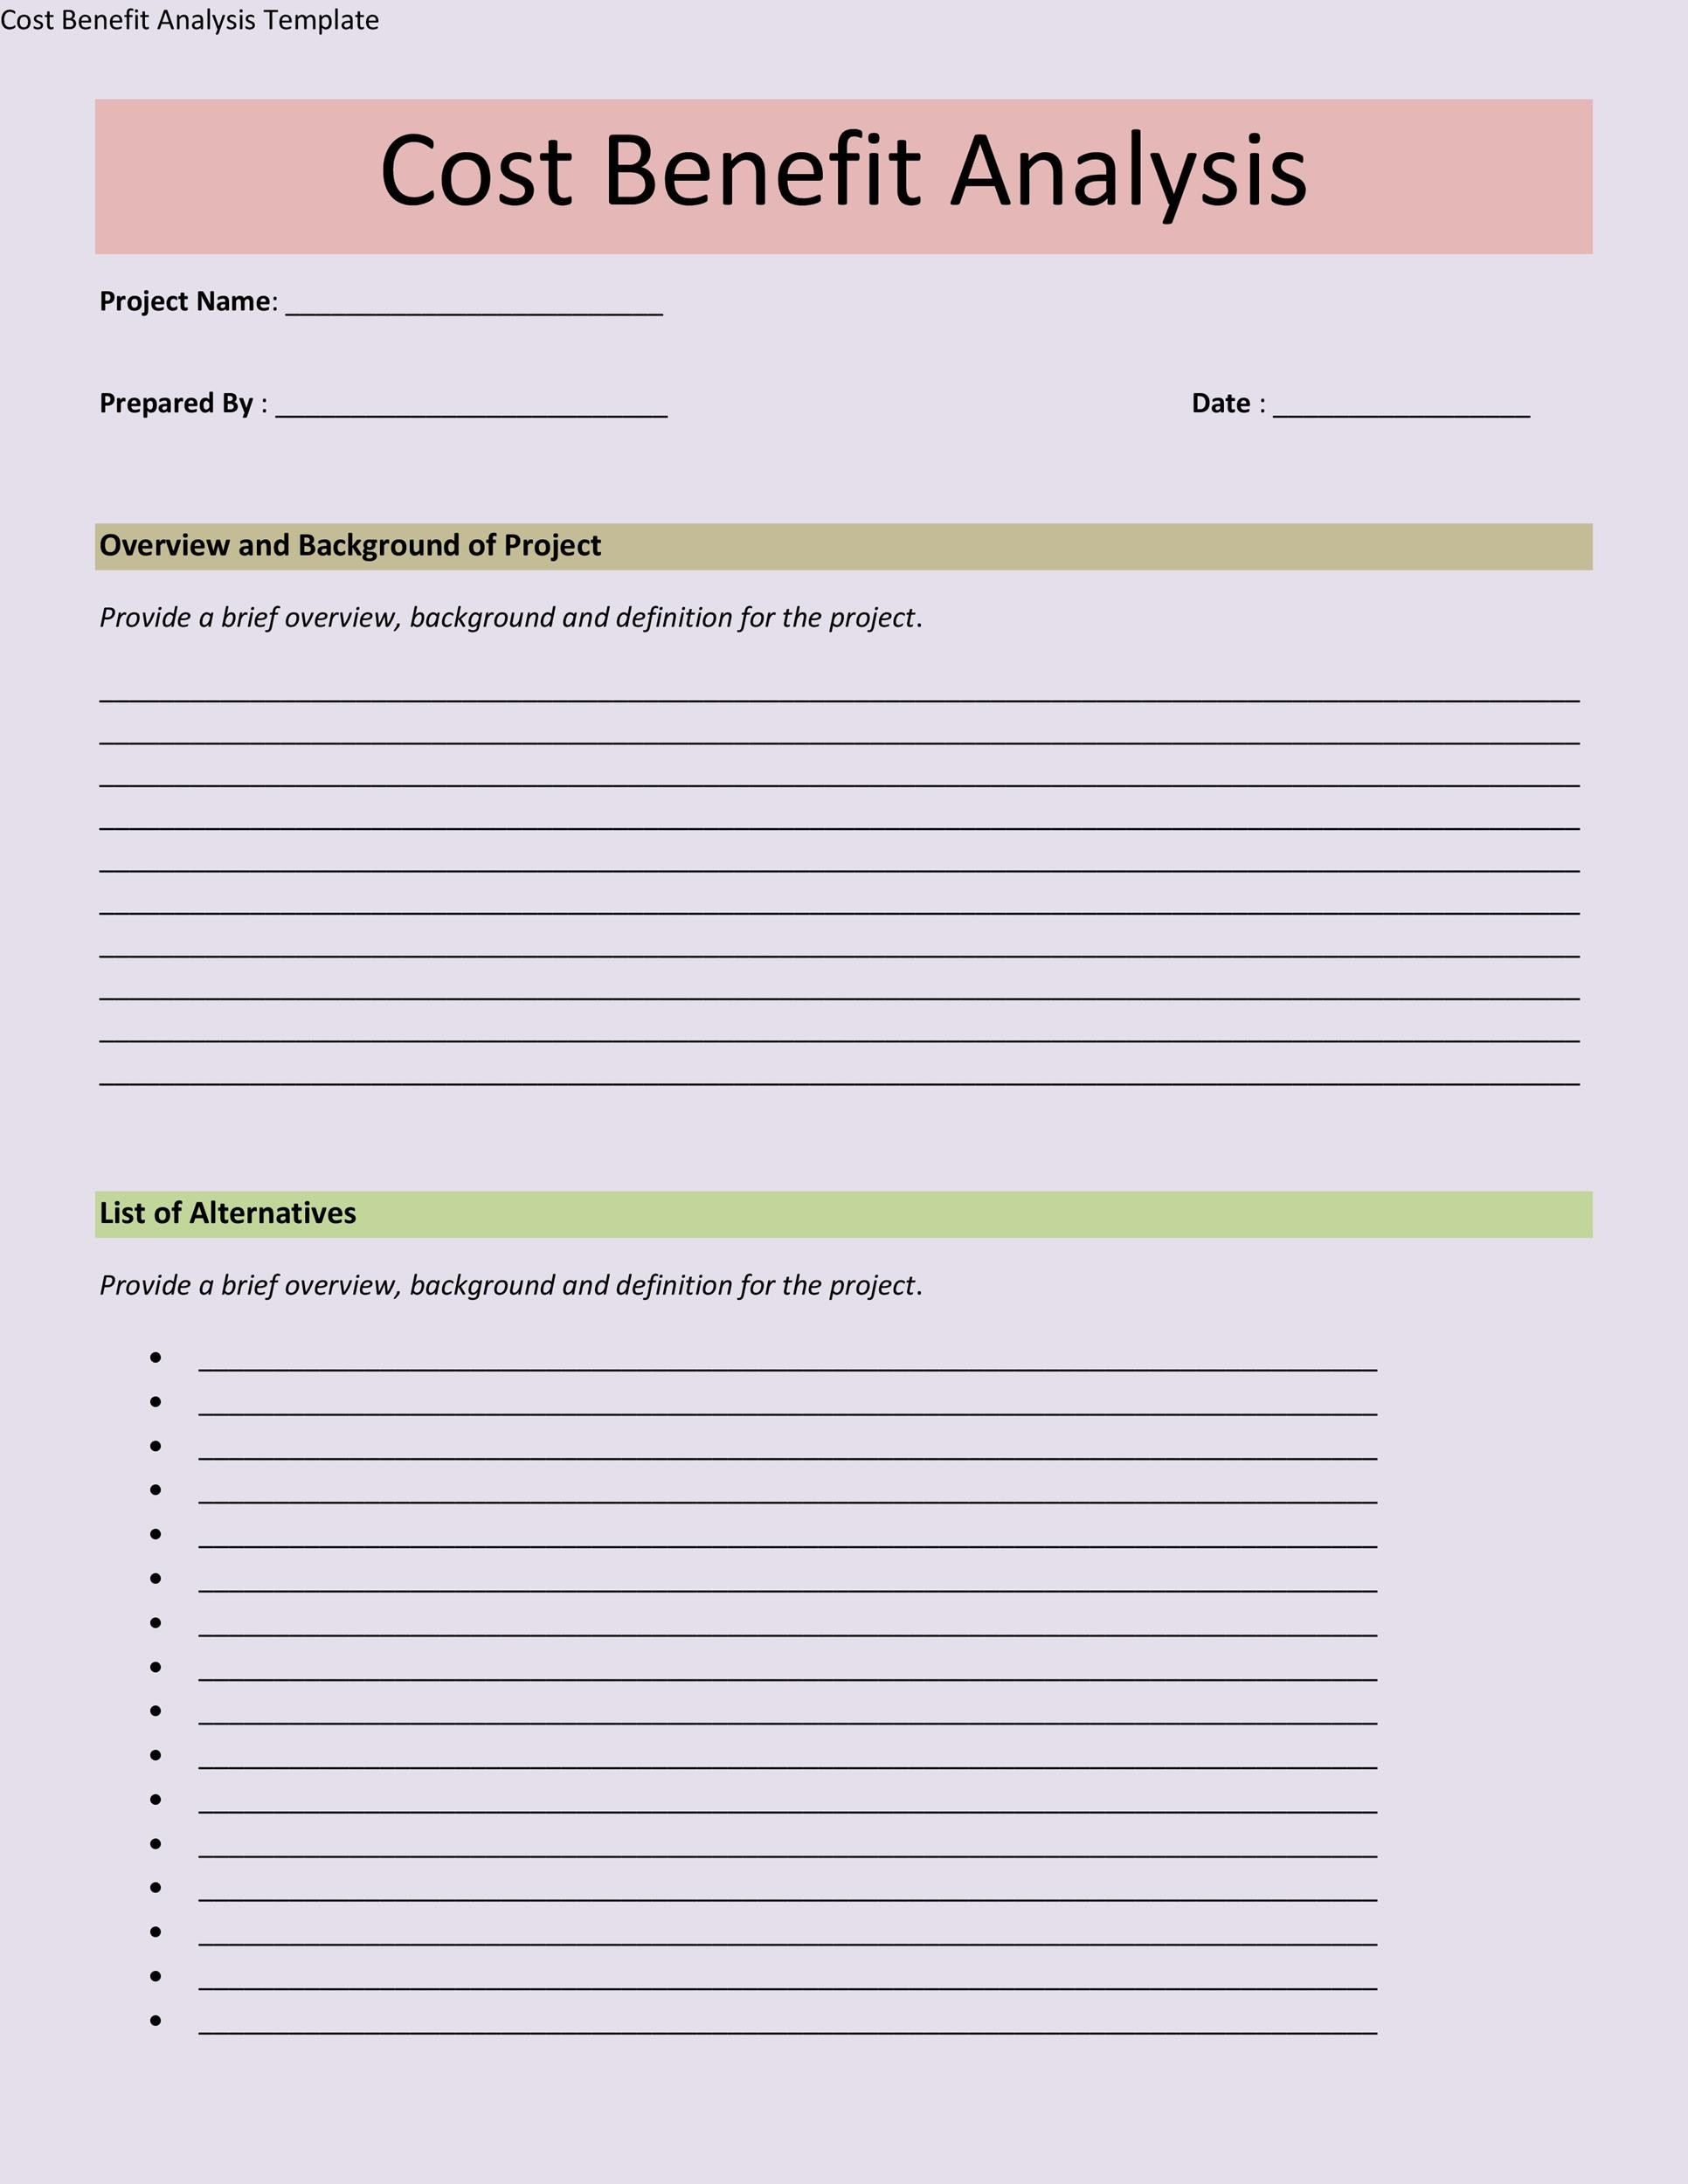 Free Cost Benefit Analysis Template 02